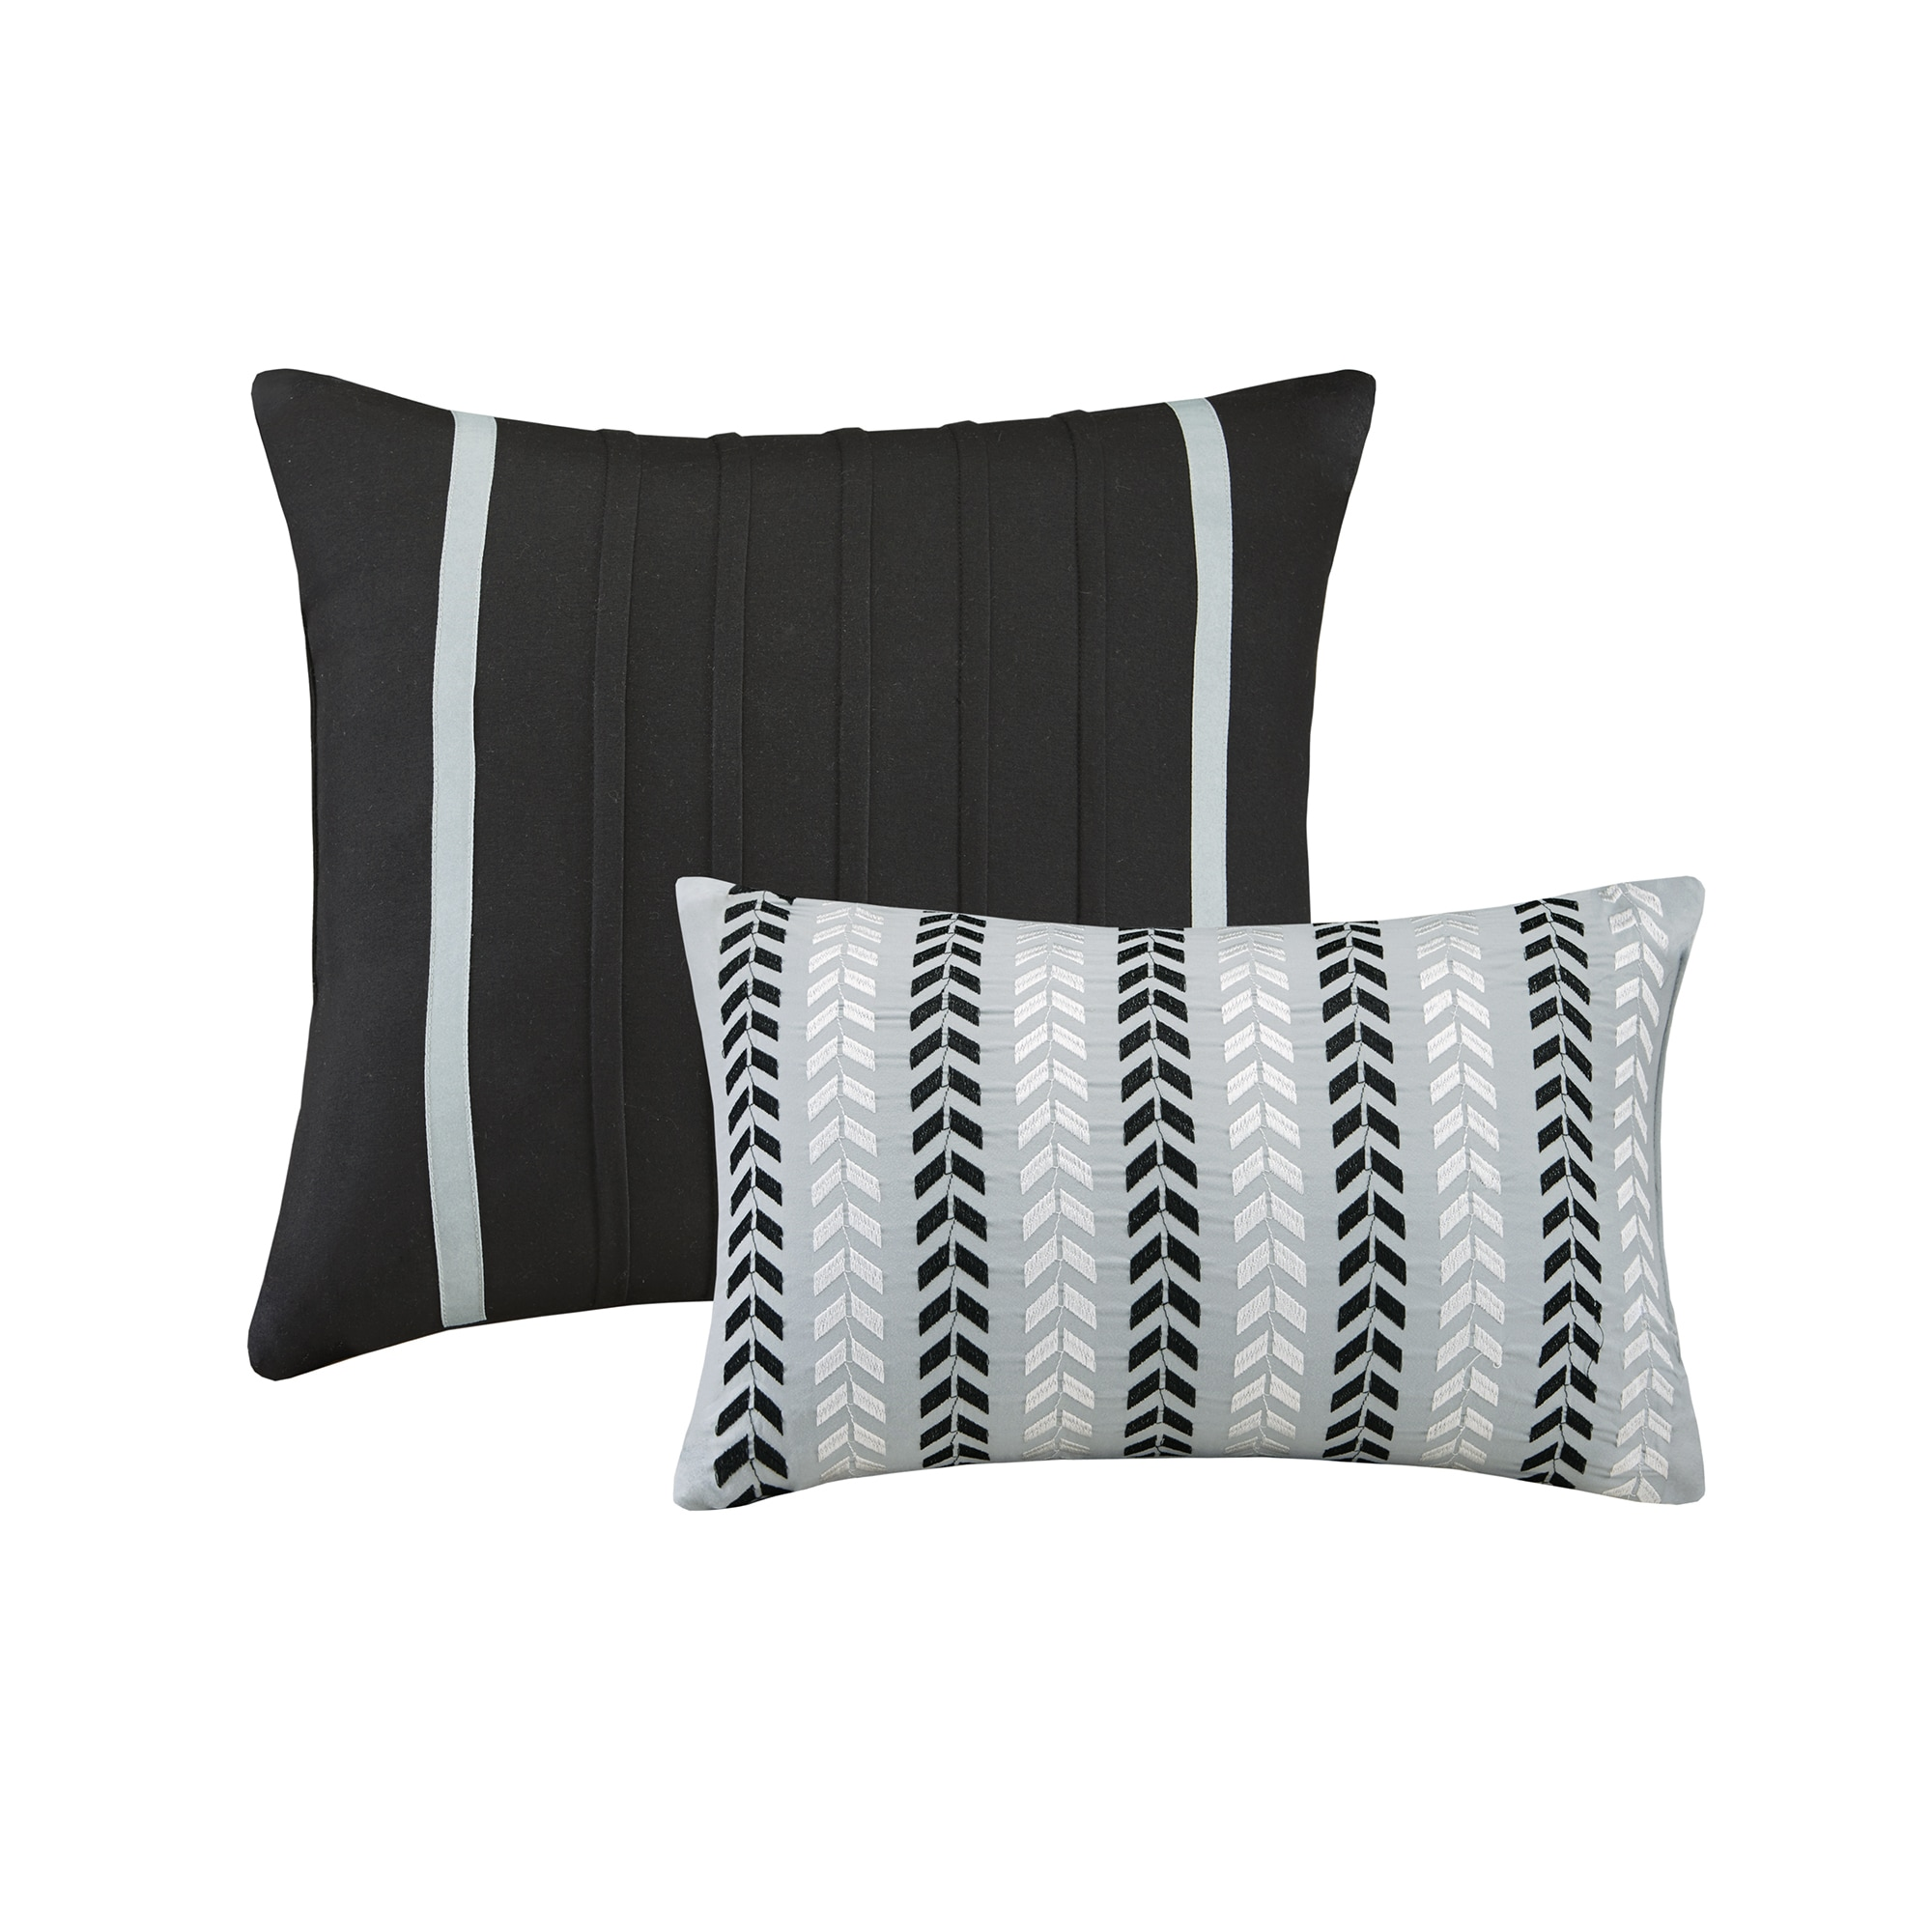 Intelligent Design Laila Chevron 5 piece forter Set Free